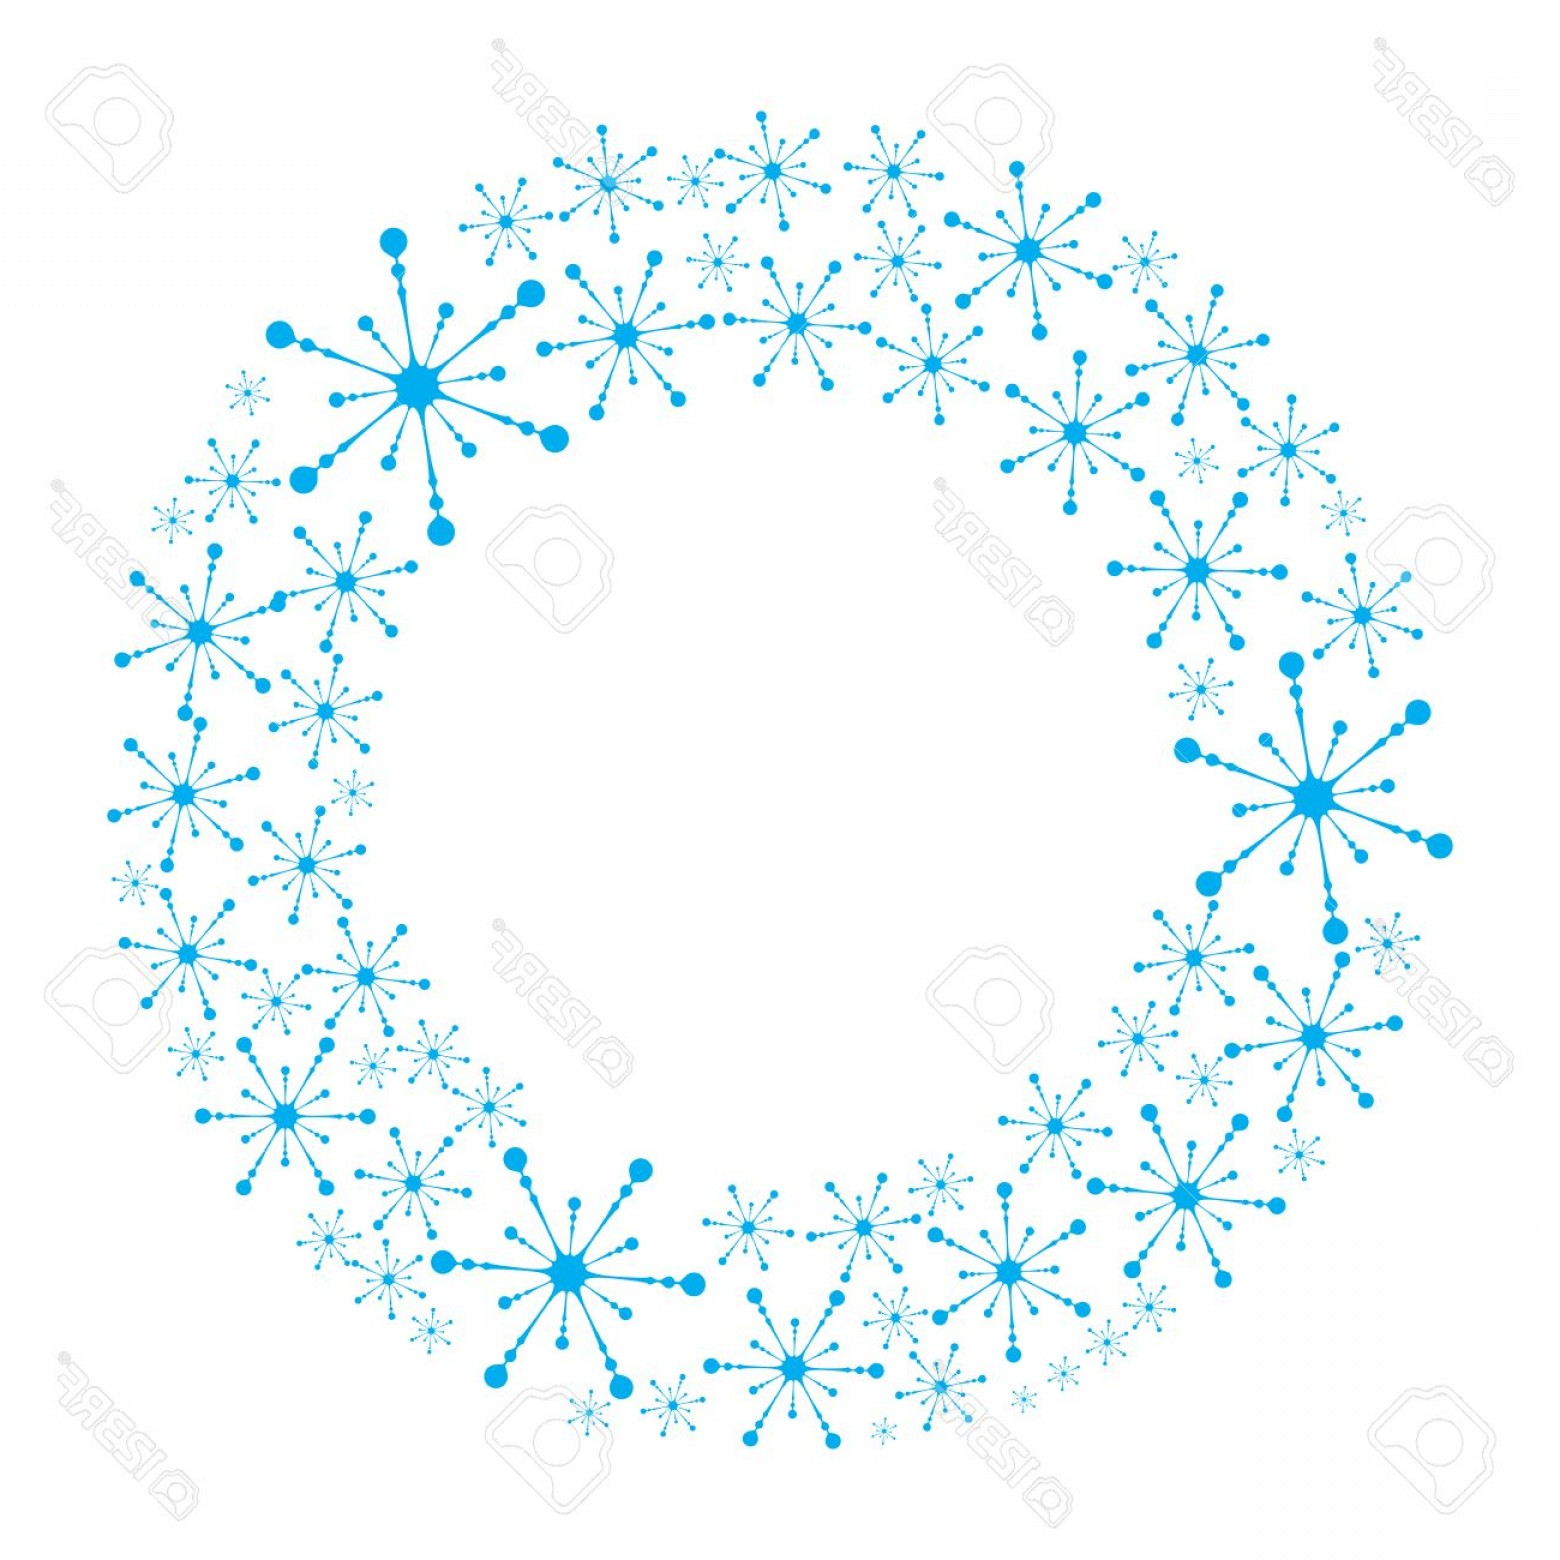 Vector Snowflake Wreath: Photostock Vector Snowflake Wreath Isolated Snow Flake Circle Frame Round Winter Background